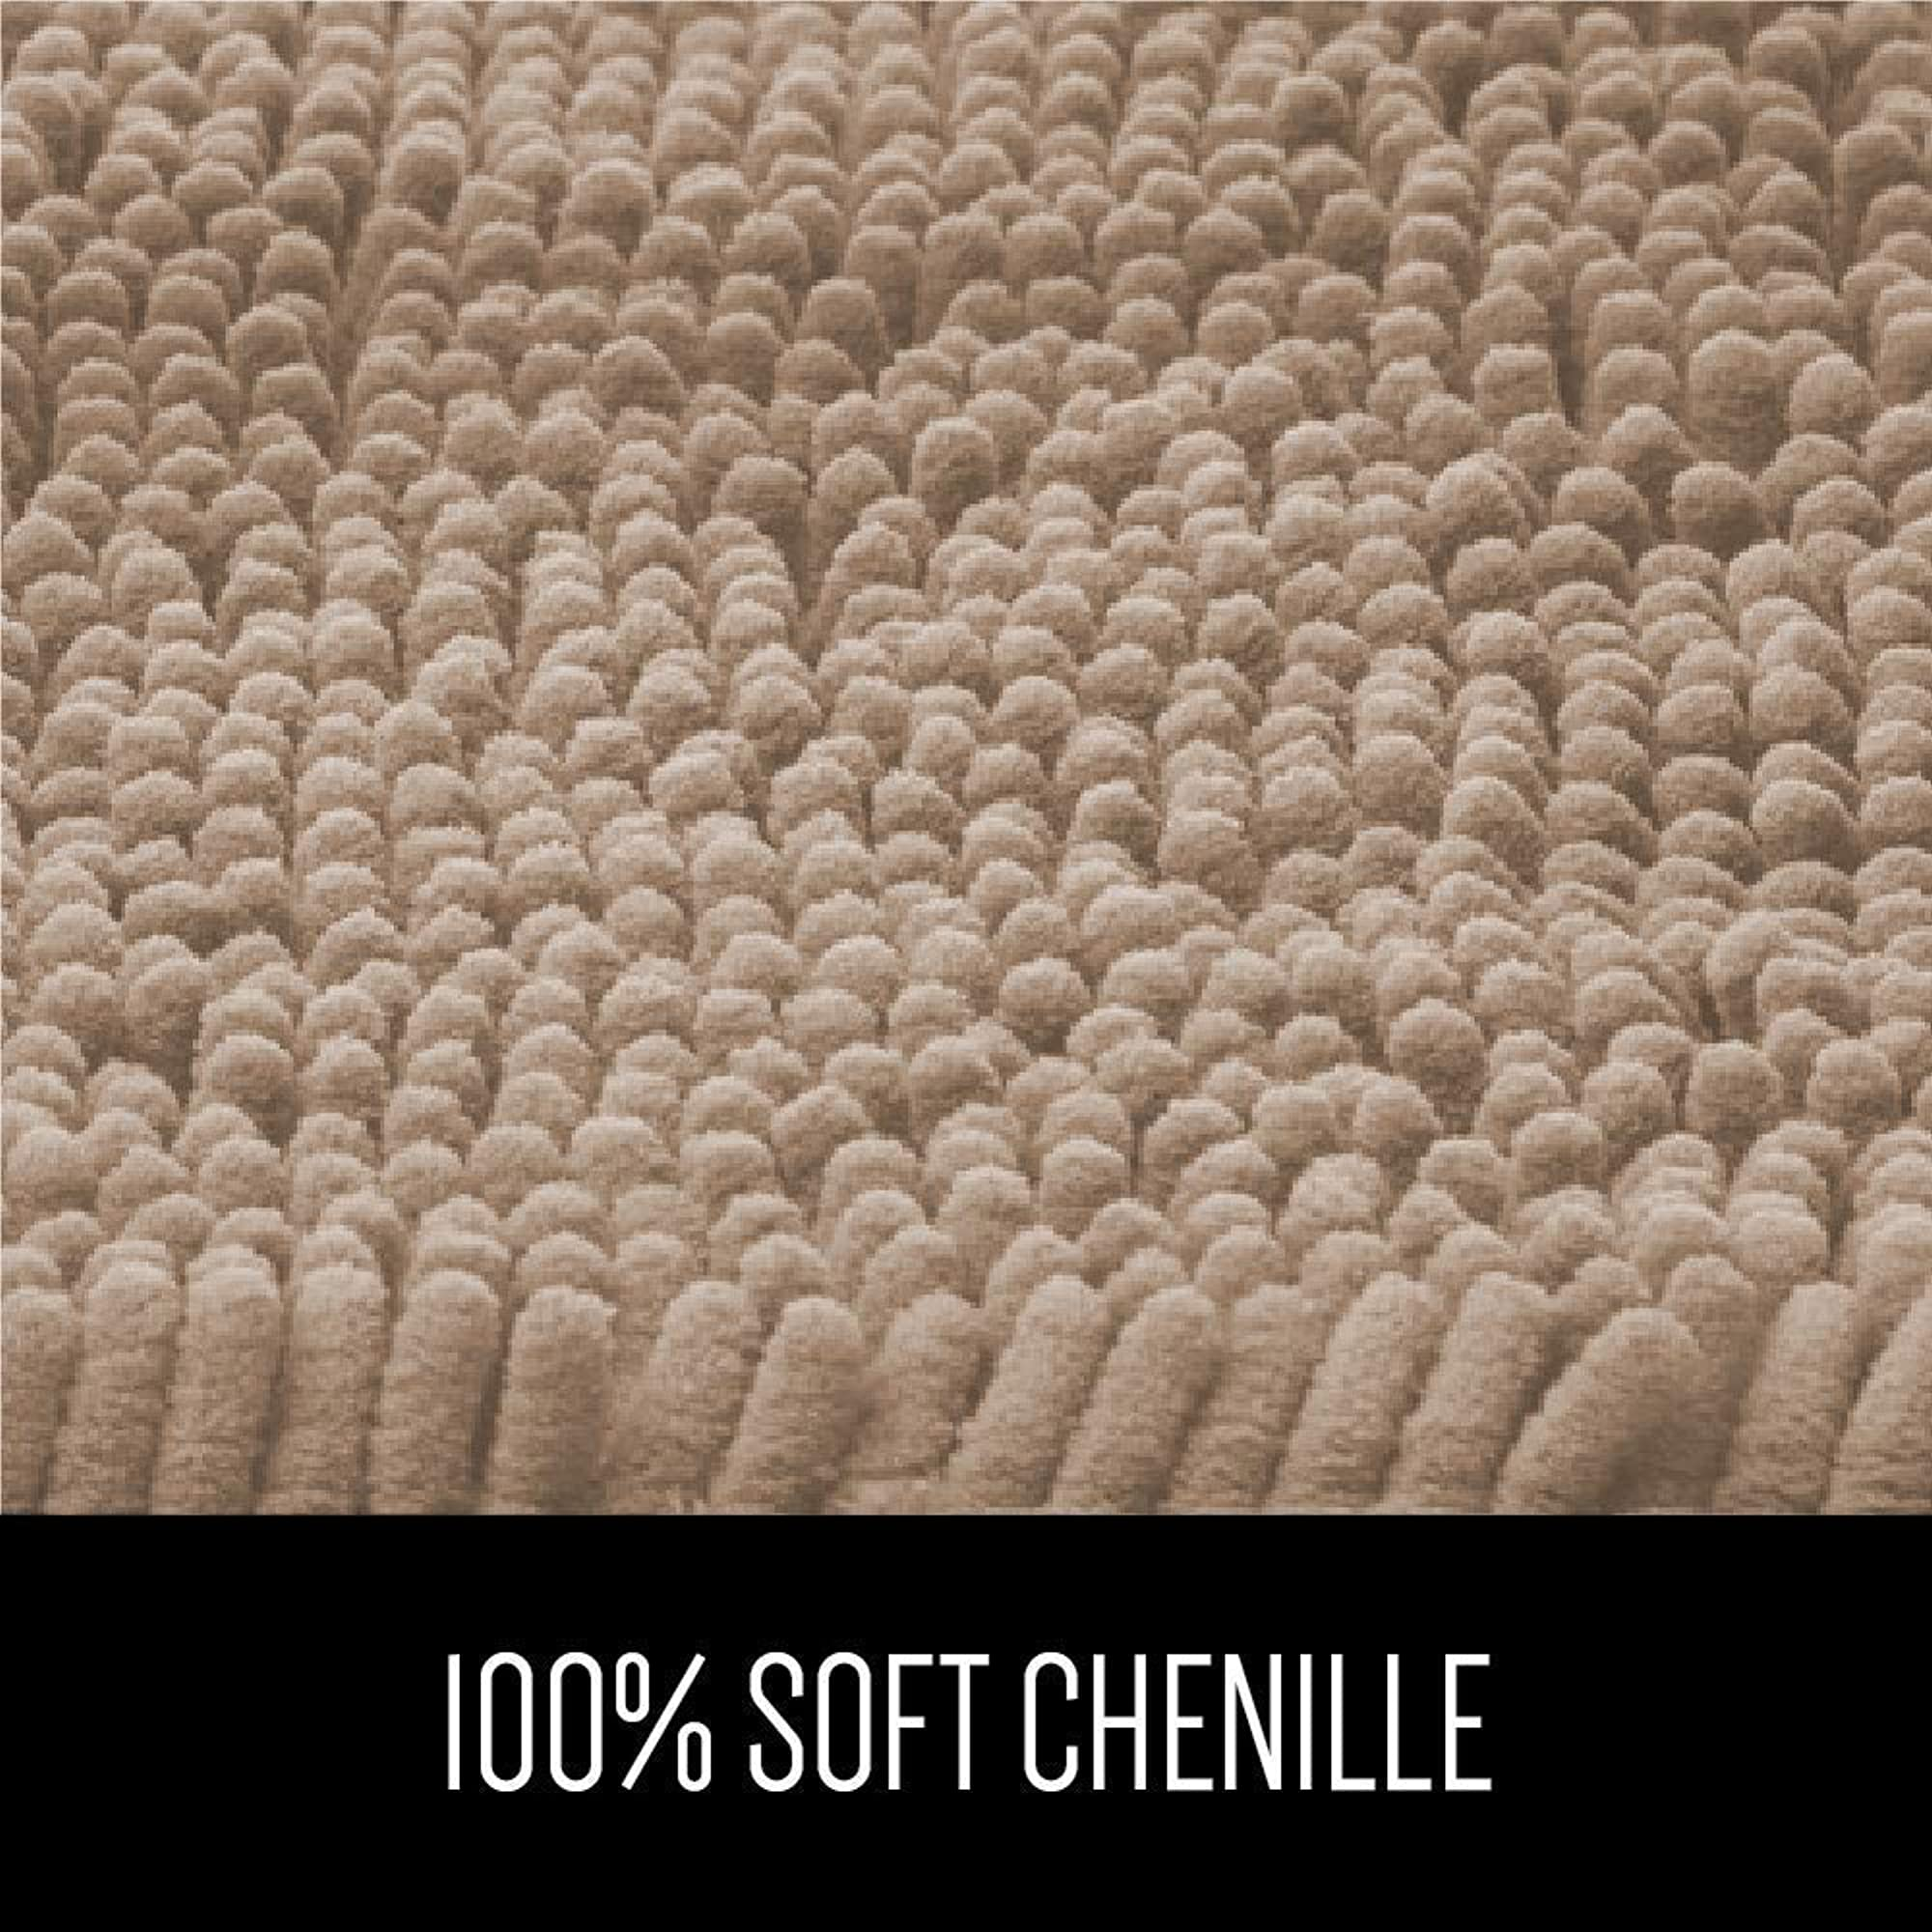 Luxury Chenille, Extra Soft, And Absorbent Large Shaggy Bathroom Rugs